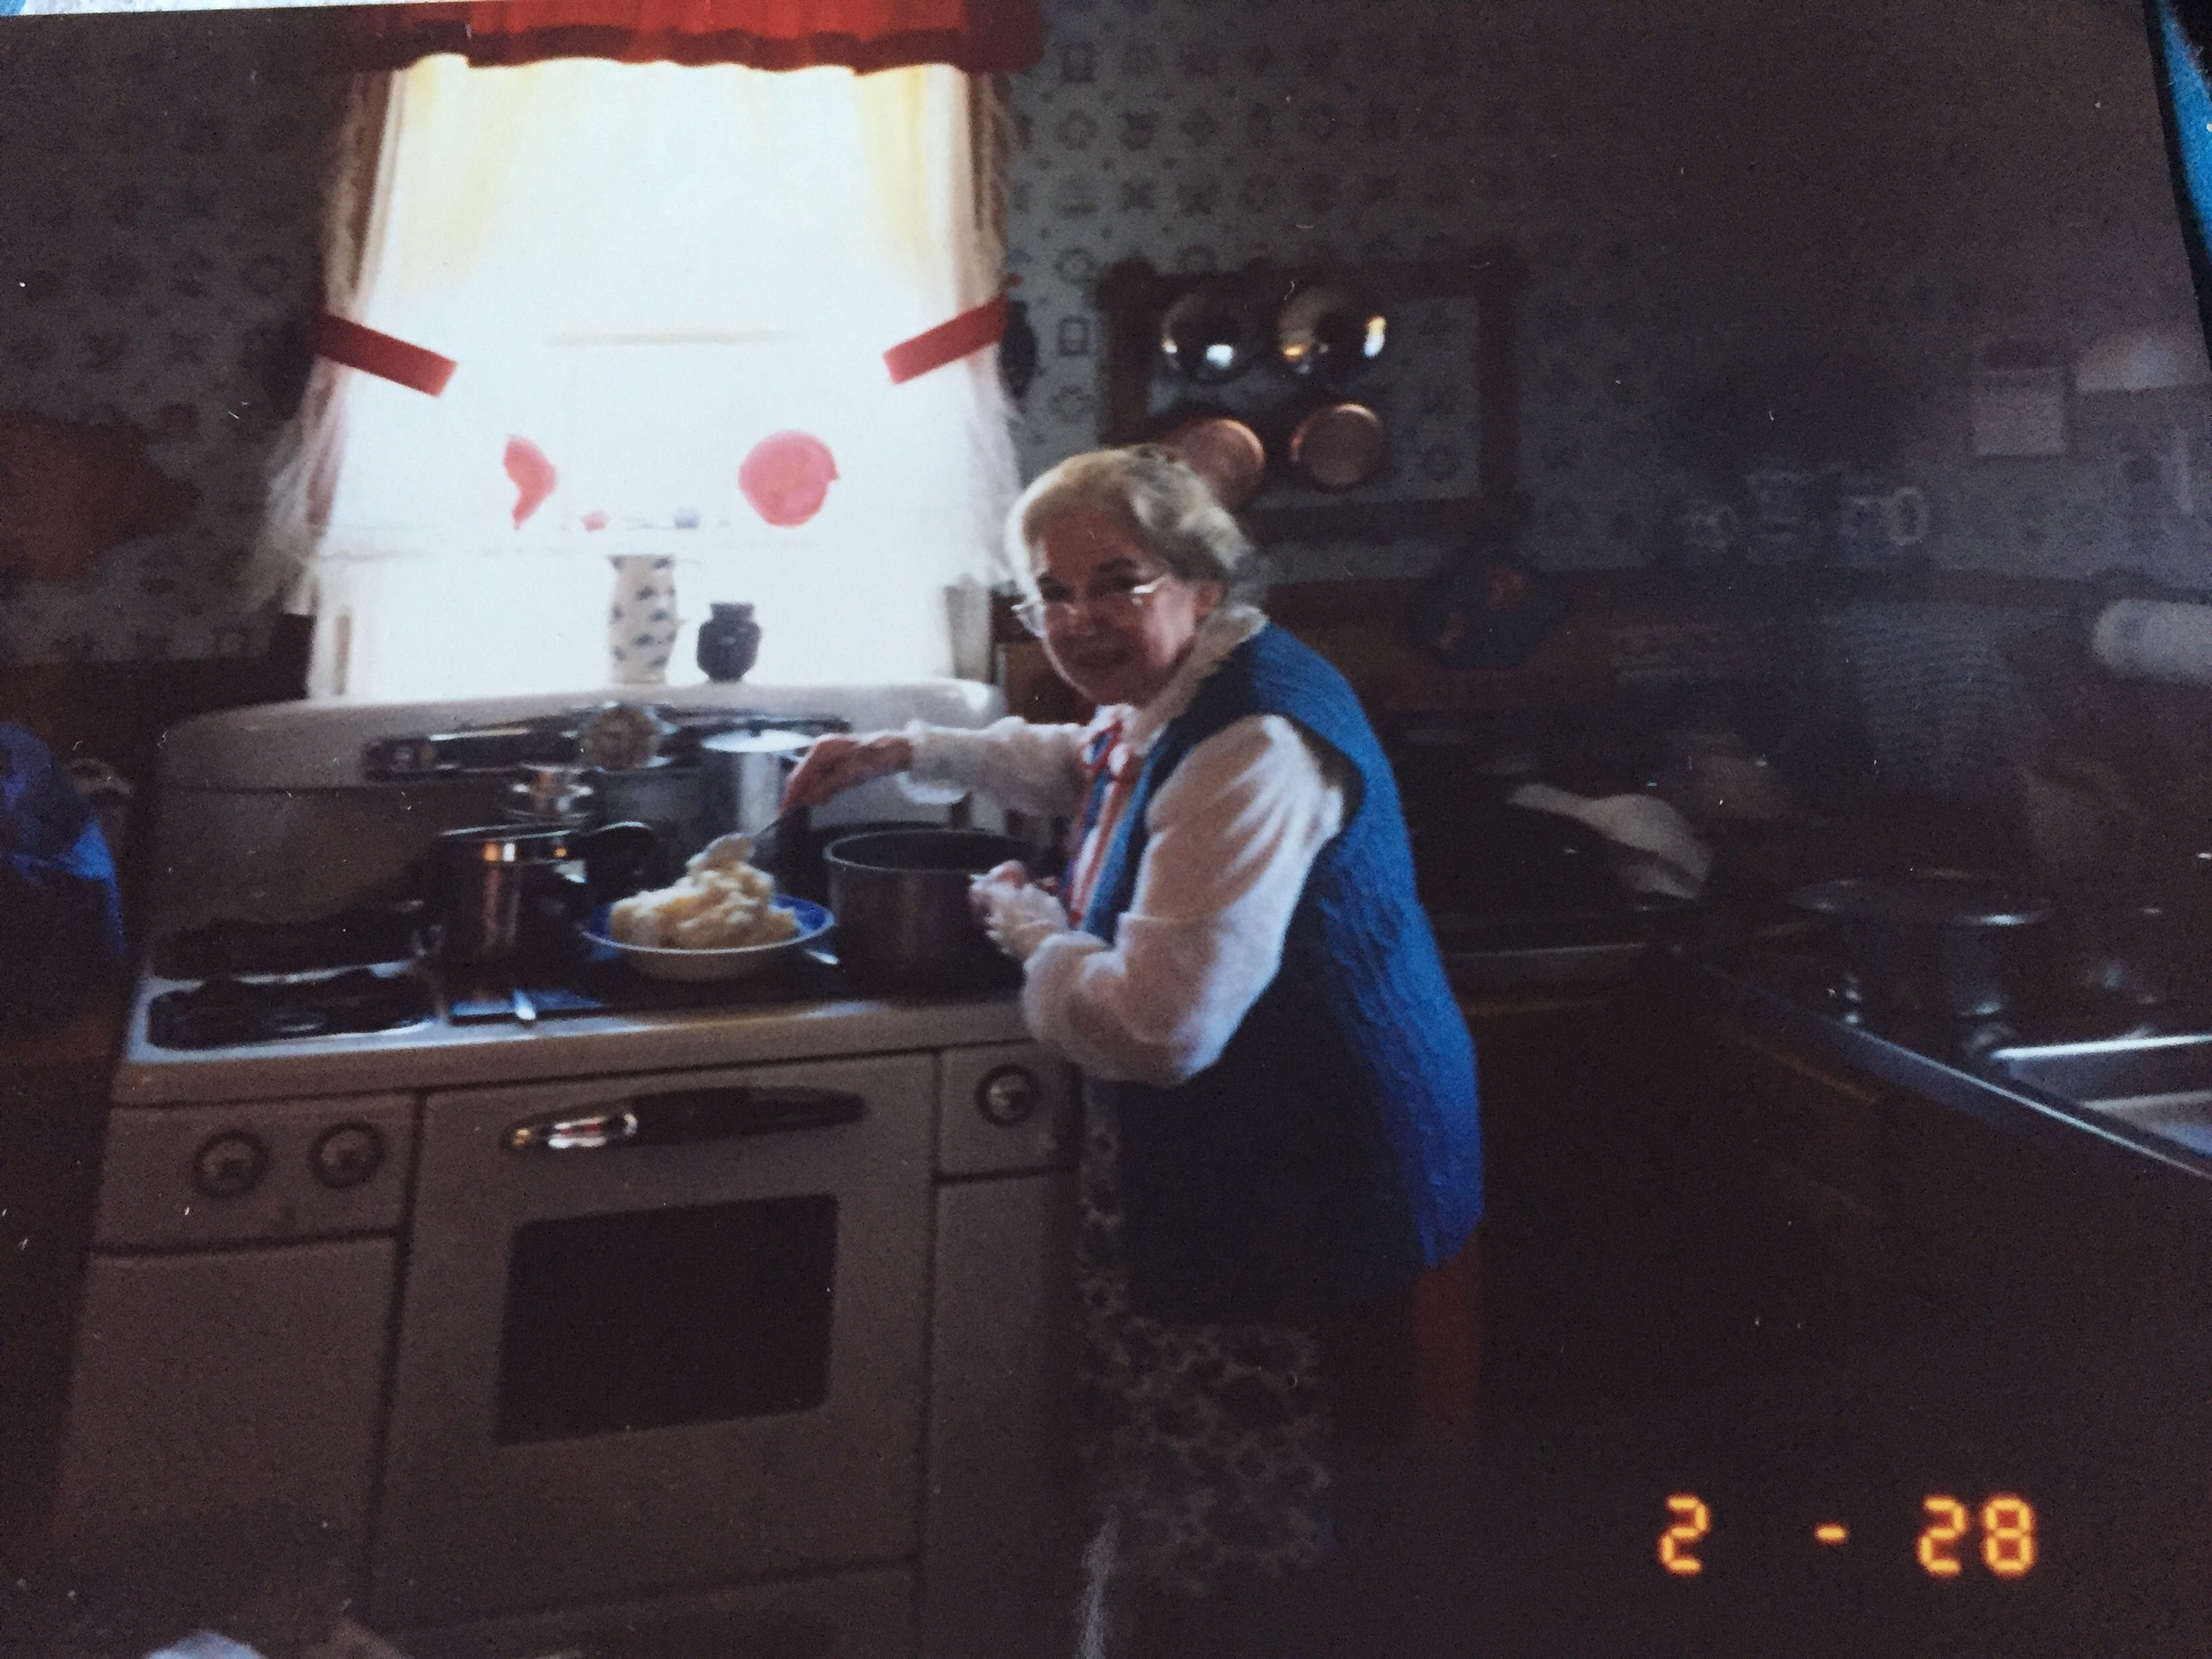 My Grandma Lois - That stove is still in operation. My dad lives there now.